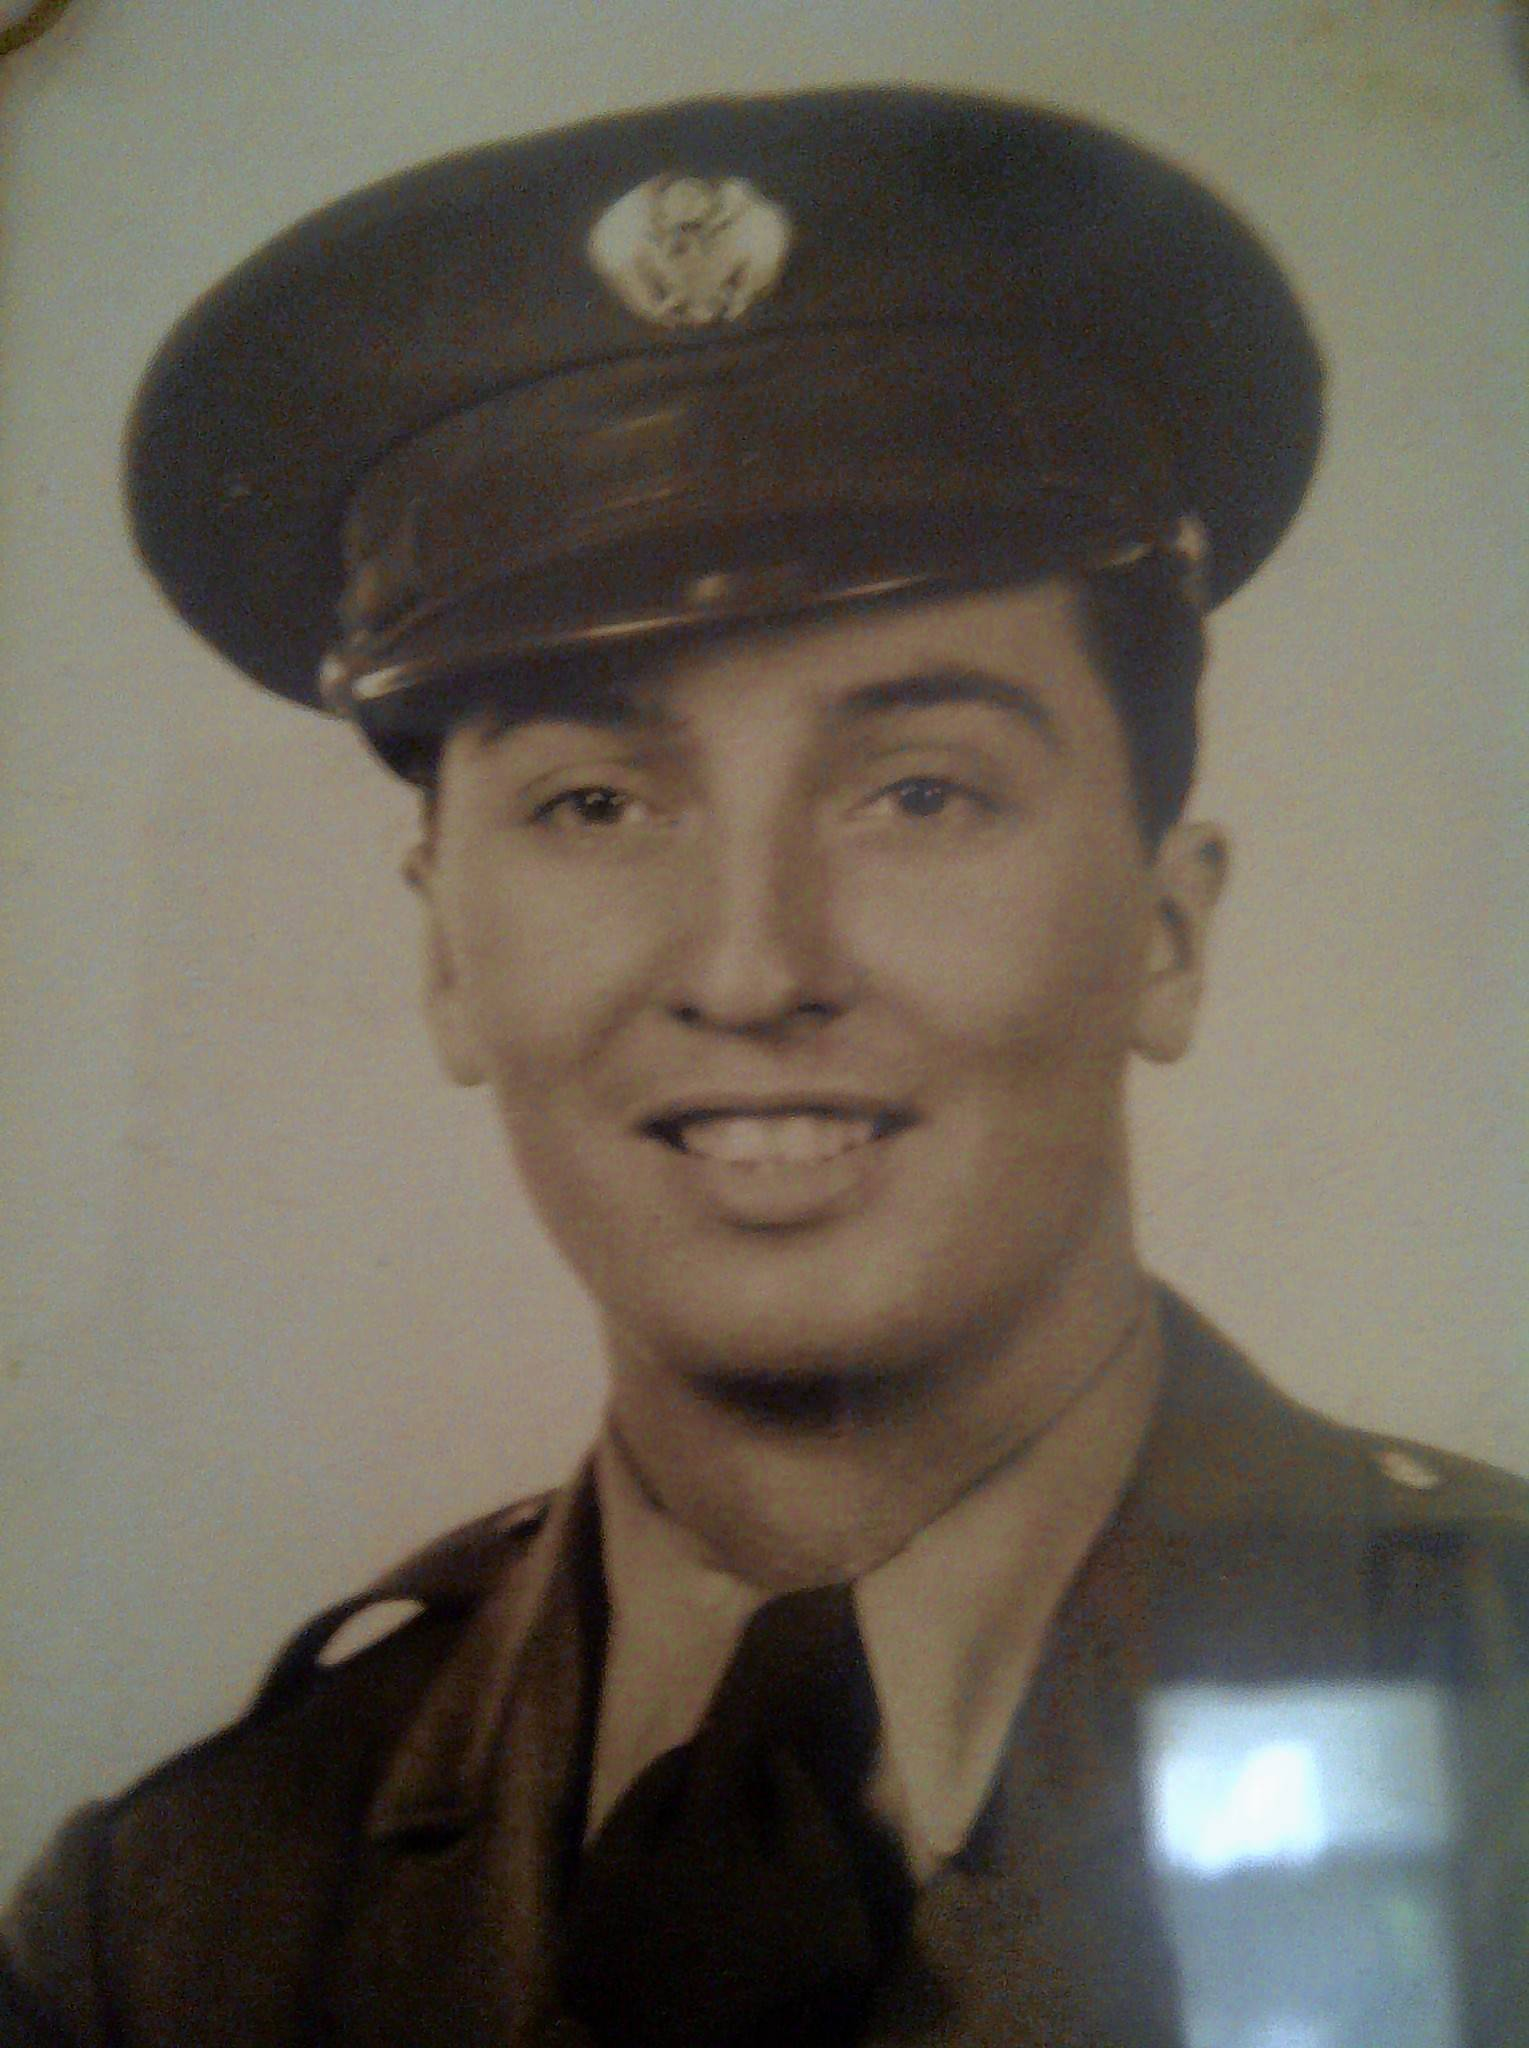 Arcada Theatre owner Ron Onesti reminisces about his late father, World War II veteran Albert J. Onesti, and other fathers he's known in the entertainment business.